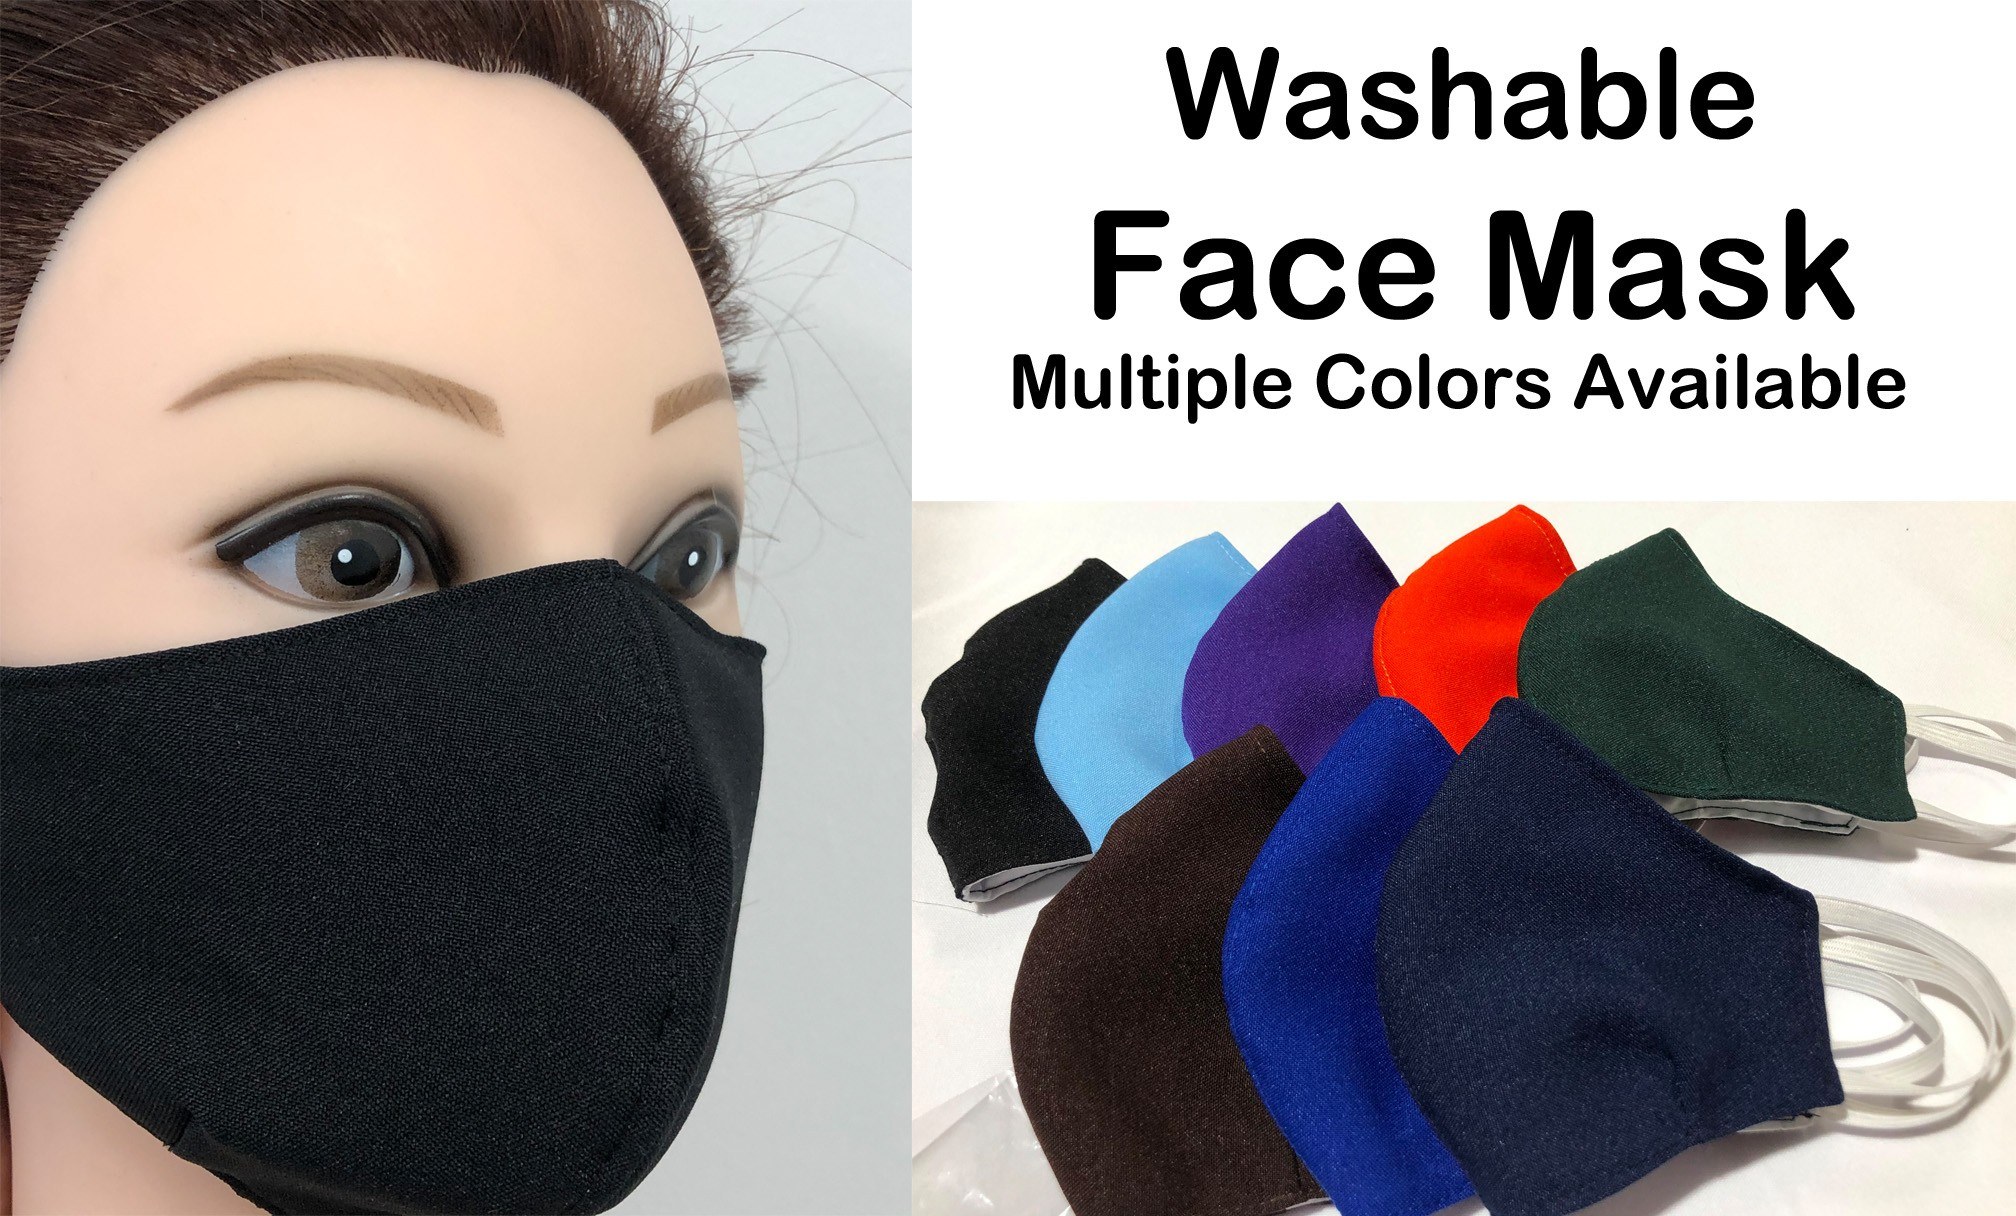 http://miamisuperstore.com/home/44-washable-face-mask.html